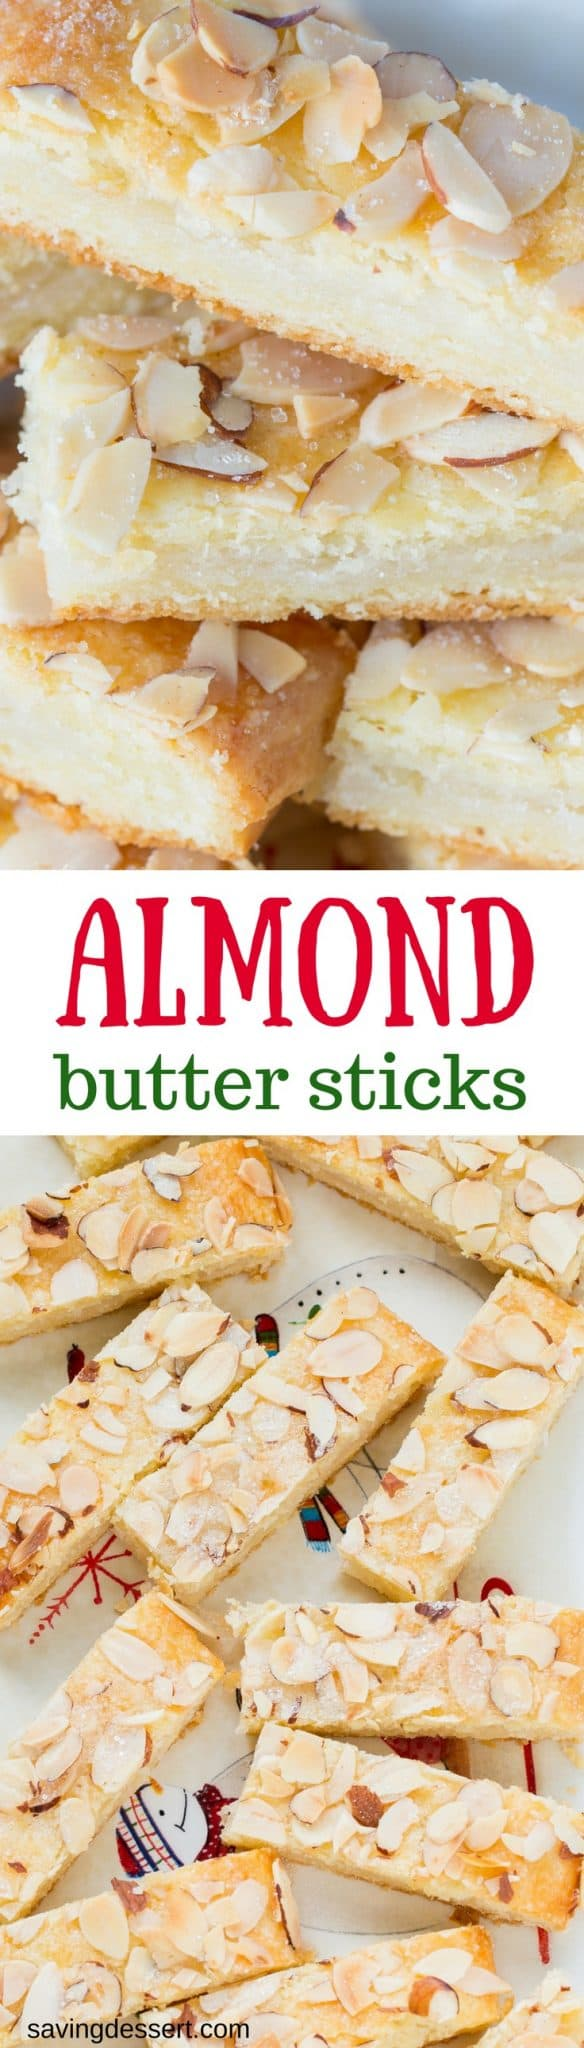 Almond Butter Sticks are a melt-in-your-mouth delicious, tender cookie made with a cream cheese dough andan almondsugar filling. www.savingdessert.com #savingroomfordessert #cookie #holidaycookie #christmascookie #almondcookie #creamcheesedough